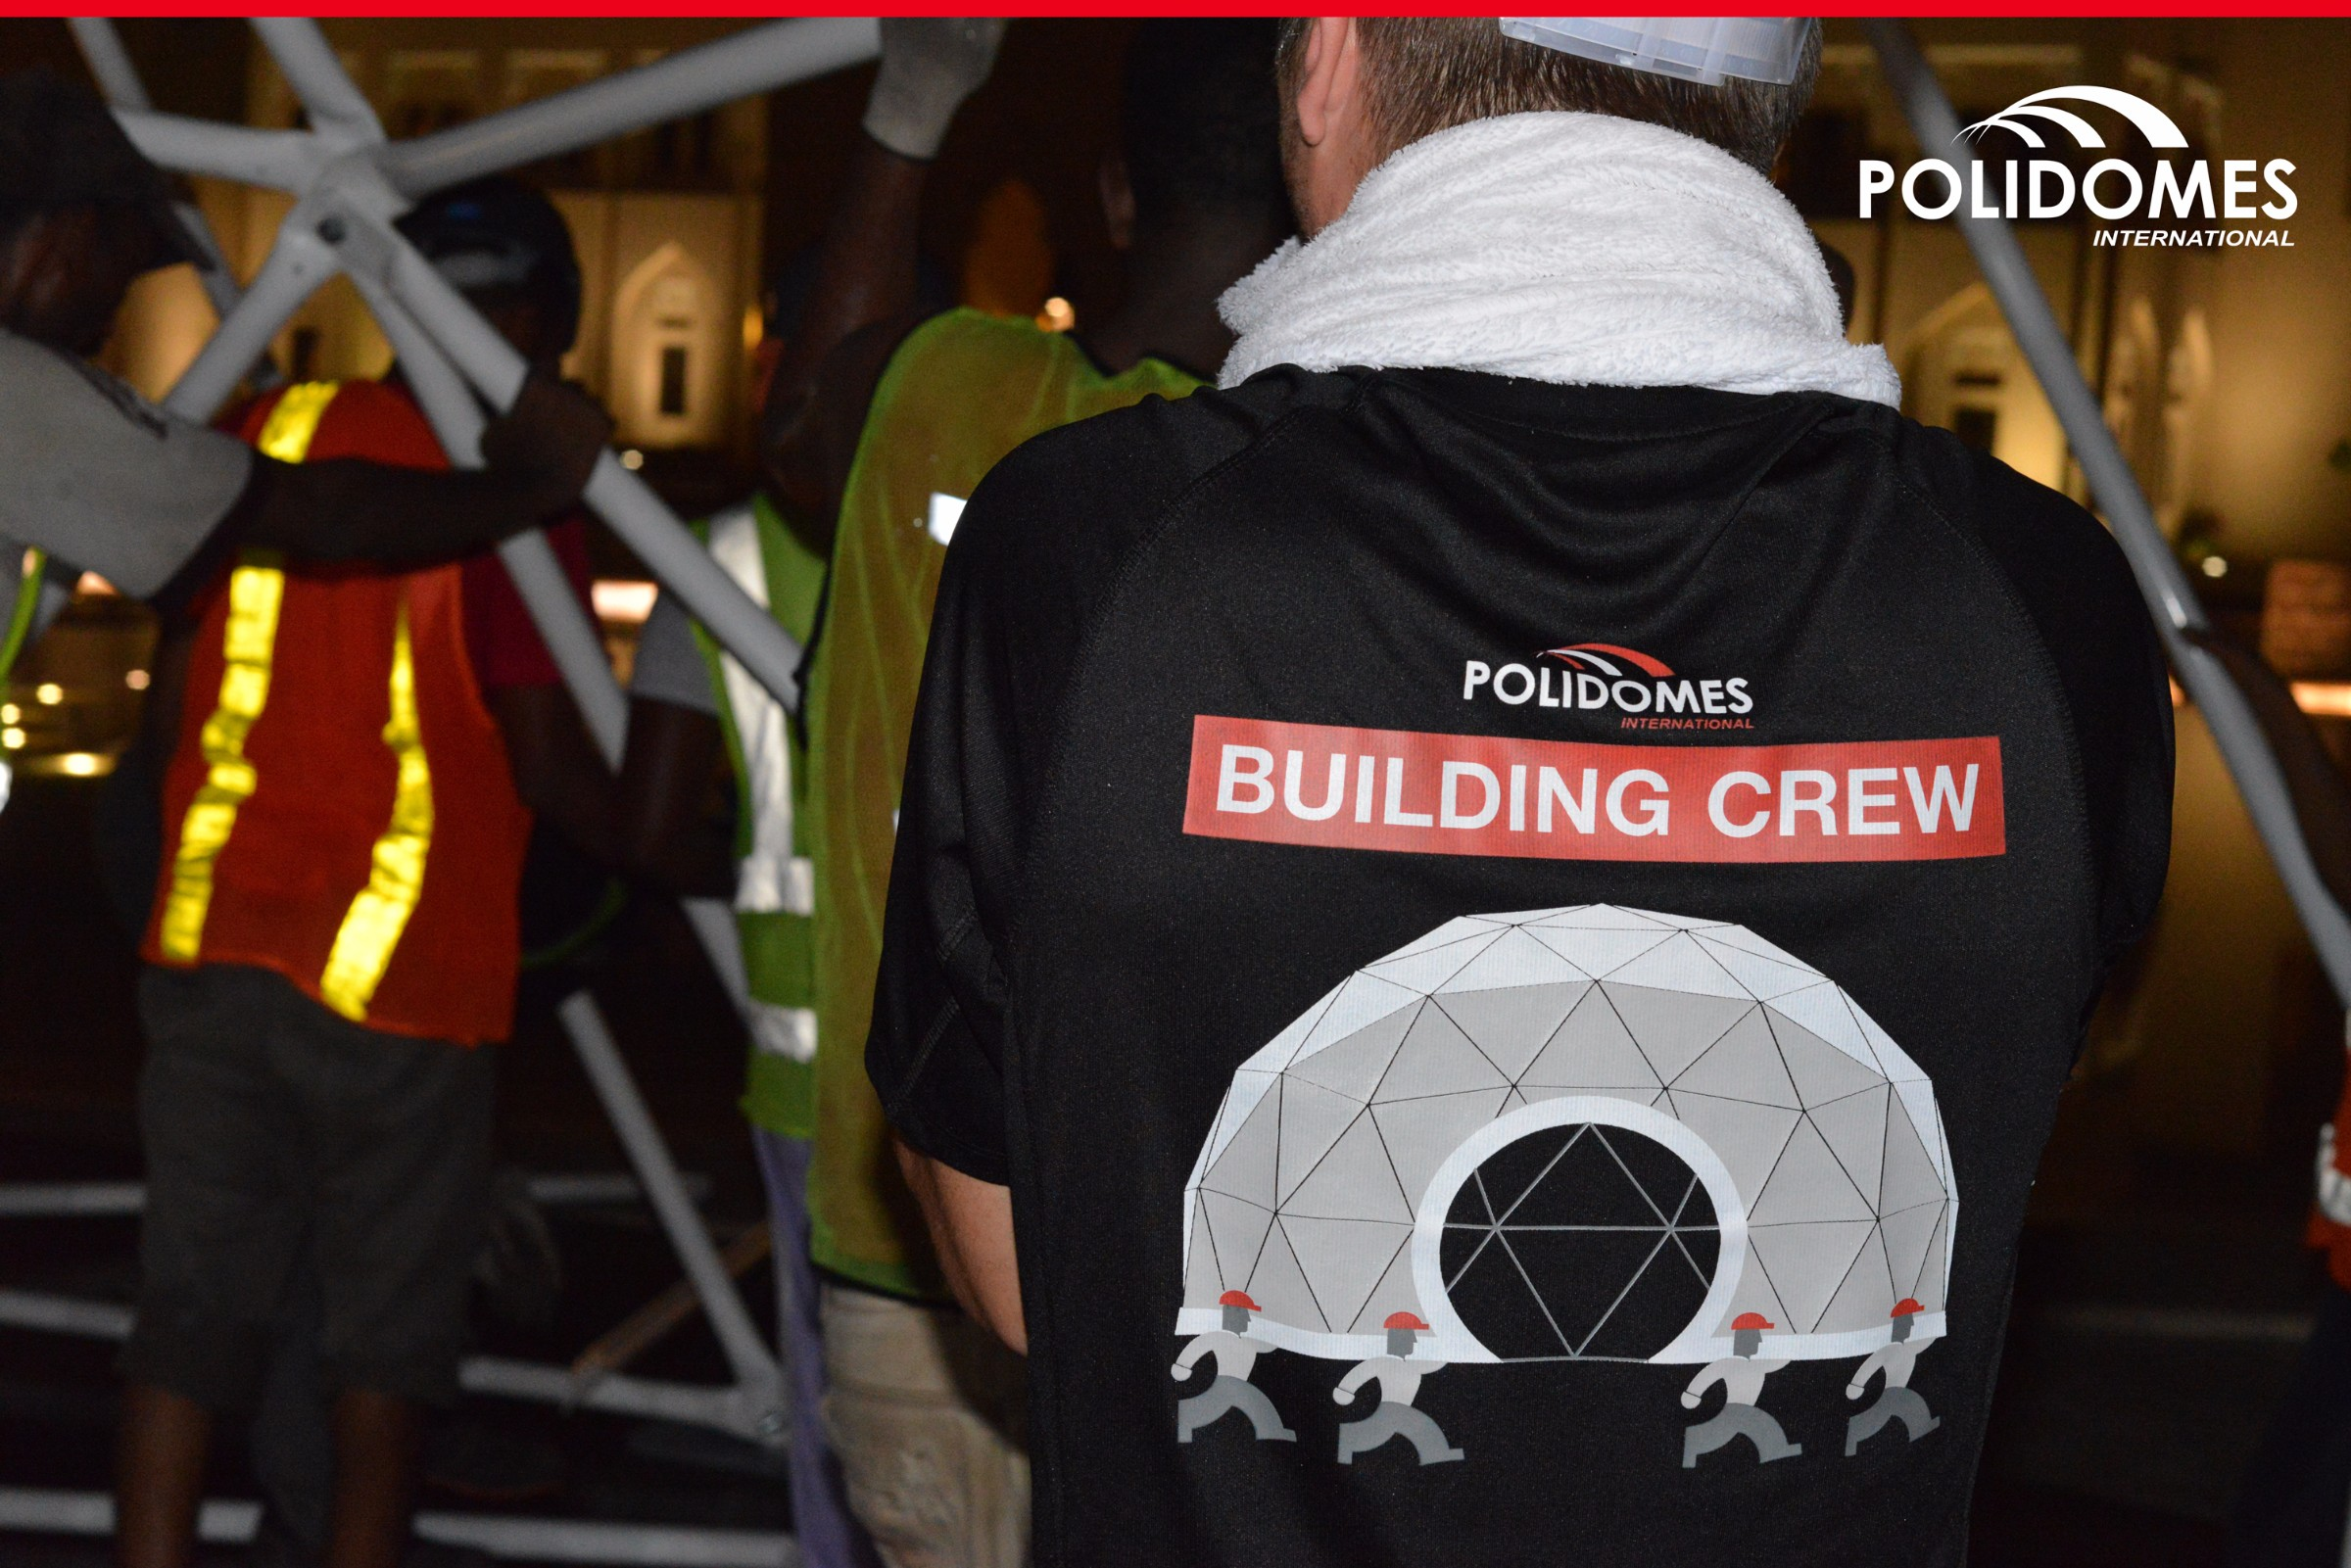 Building_crew_Polidomes